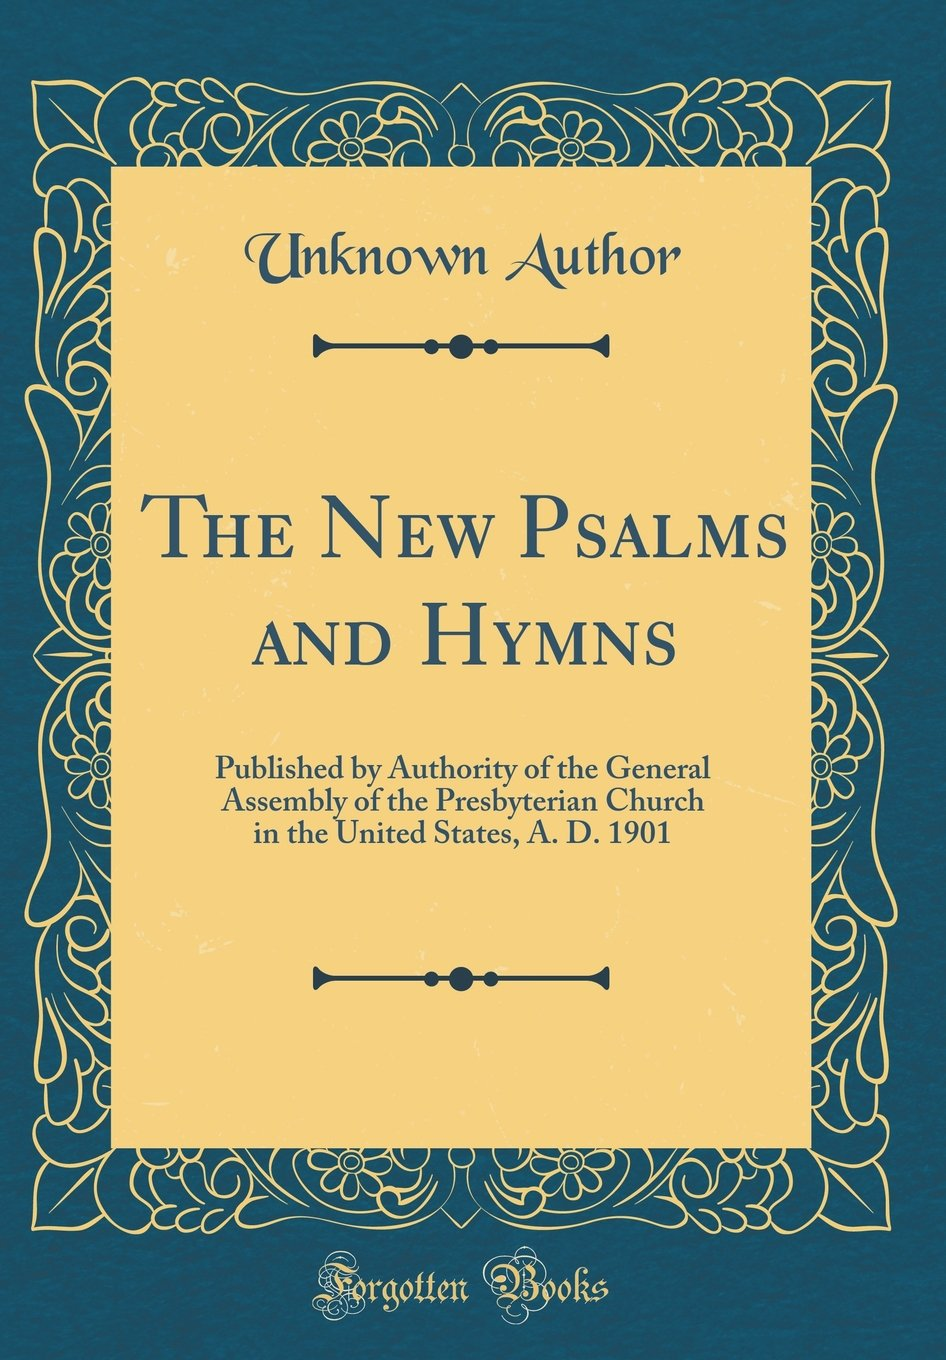 The New Psalms and Hymns: Published by Authority of the General Assembly of the Presbyterian Church in the United States, A. D. 1901 (Classic Reprint) PDF